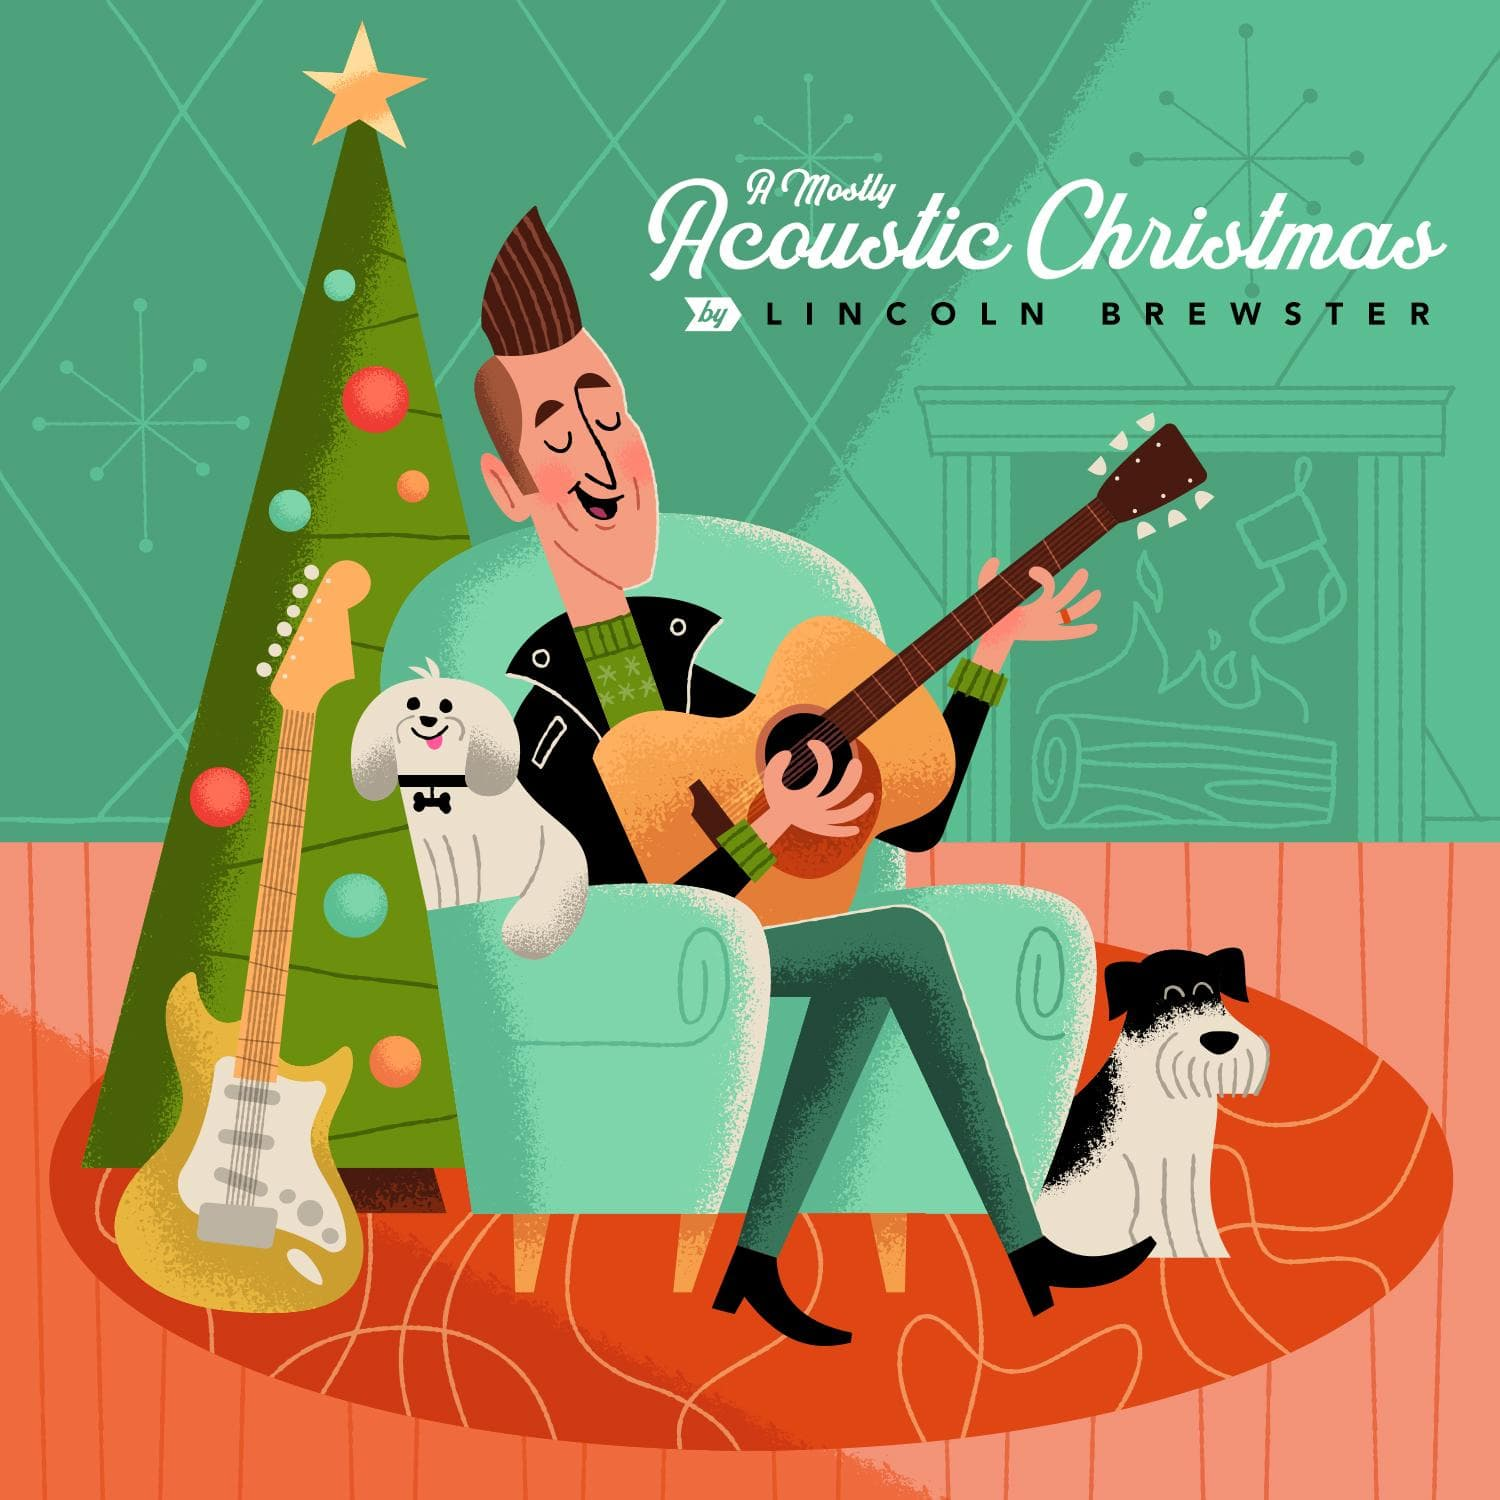 A Mostly Acoustic Christmas - Lincoln Brewster